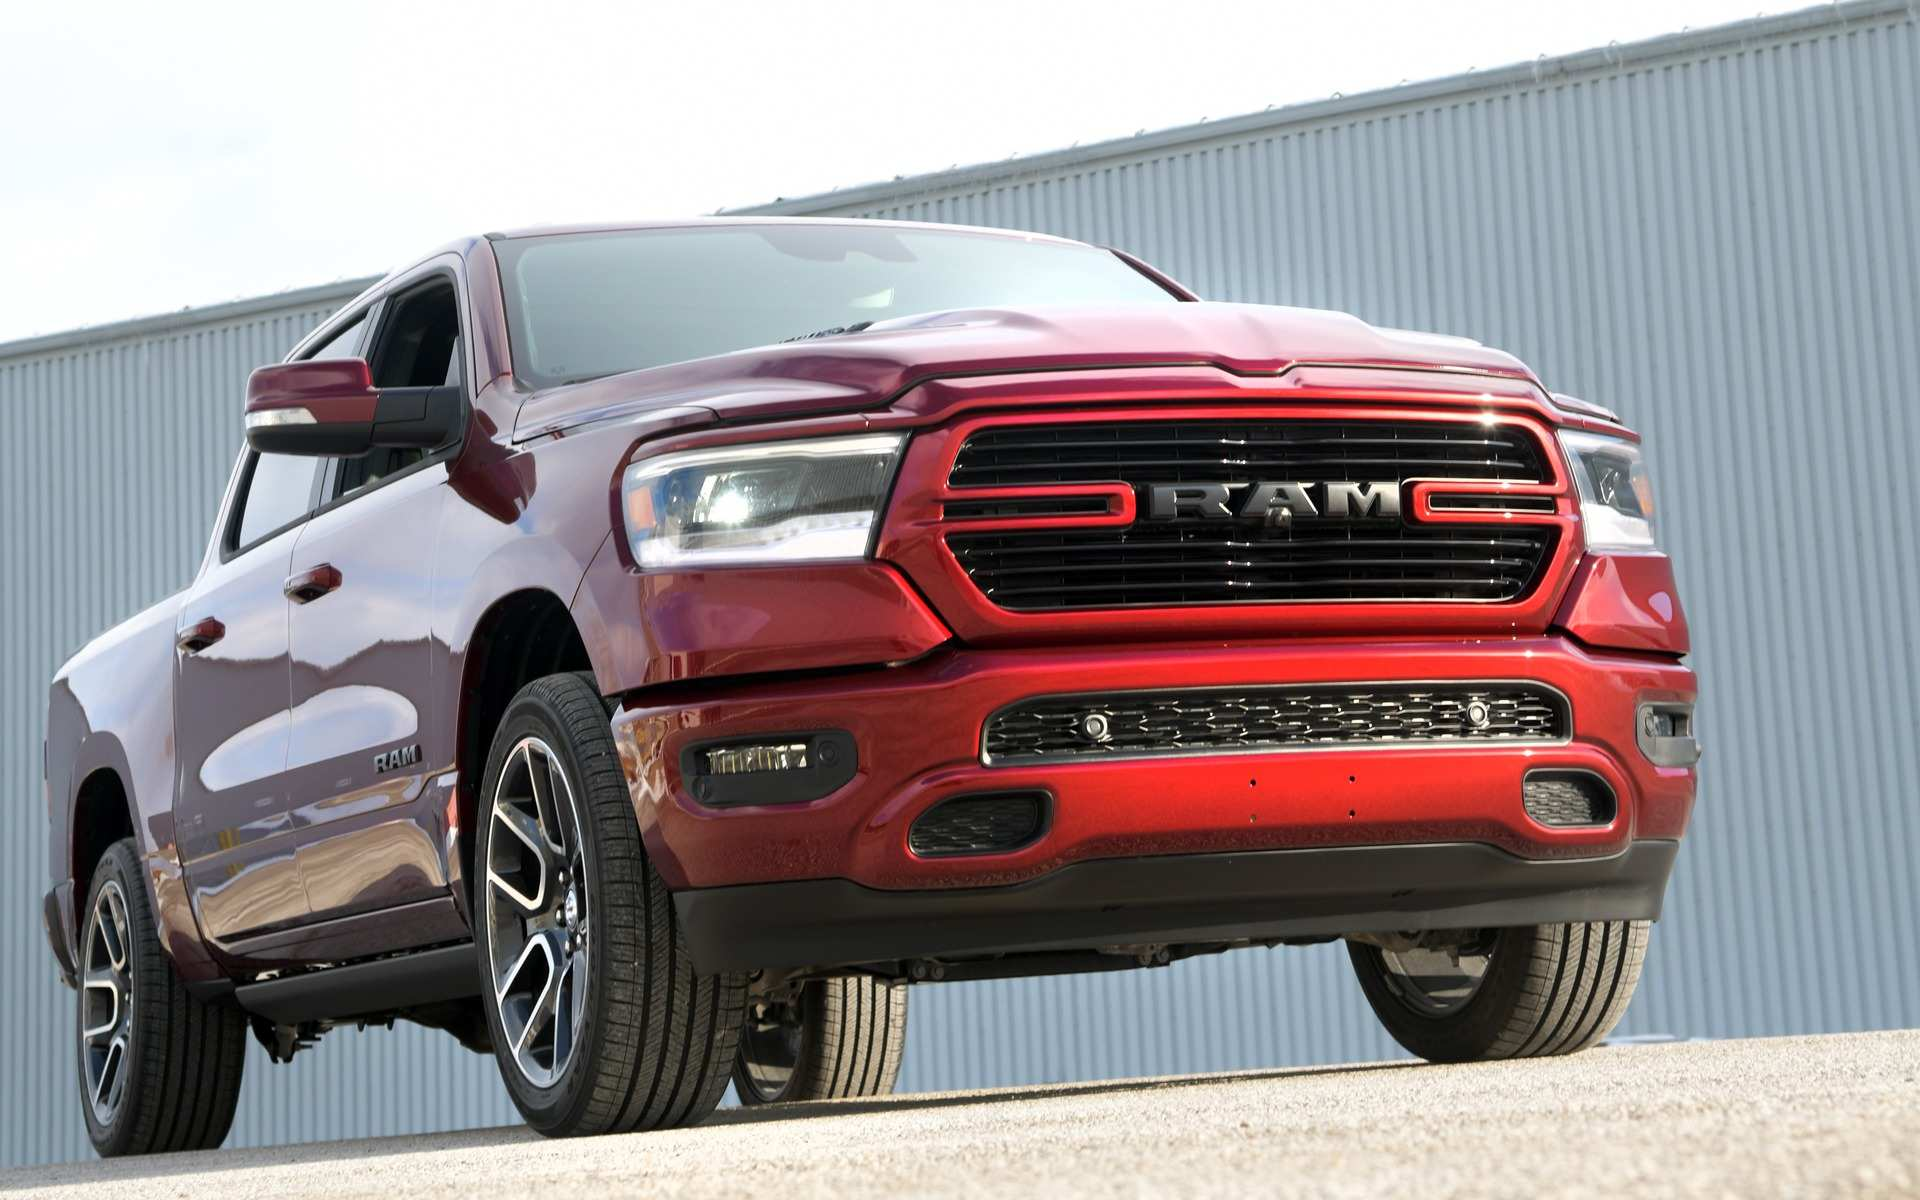 62 Concept of The When Can You Buy A 2019 Dodge Ram Release Date History by The When Can You Buy A 2019 Dodge Ram Release Date